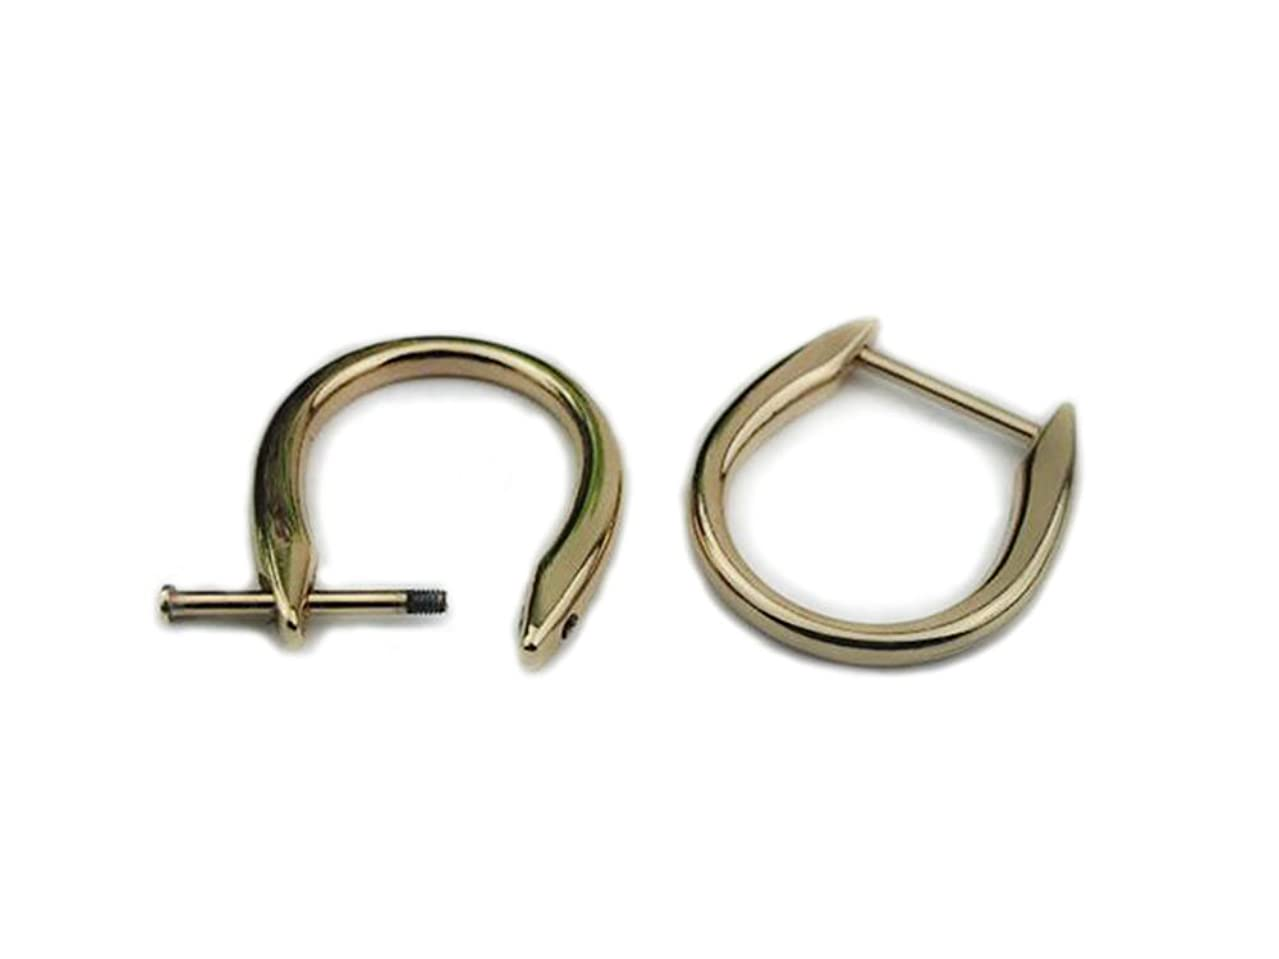 Bobeey 4pcs 7/8'' Light Gold Loop D-Rings,Screw In Shackle Semicircle D Ring,DIY Leather Craft Accessories,Purse Findings BBC12 (7/8'', Light Gold)